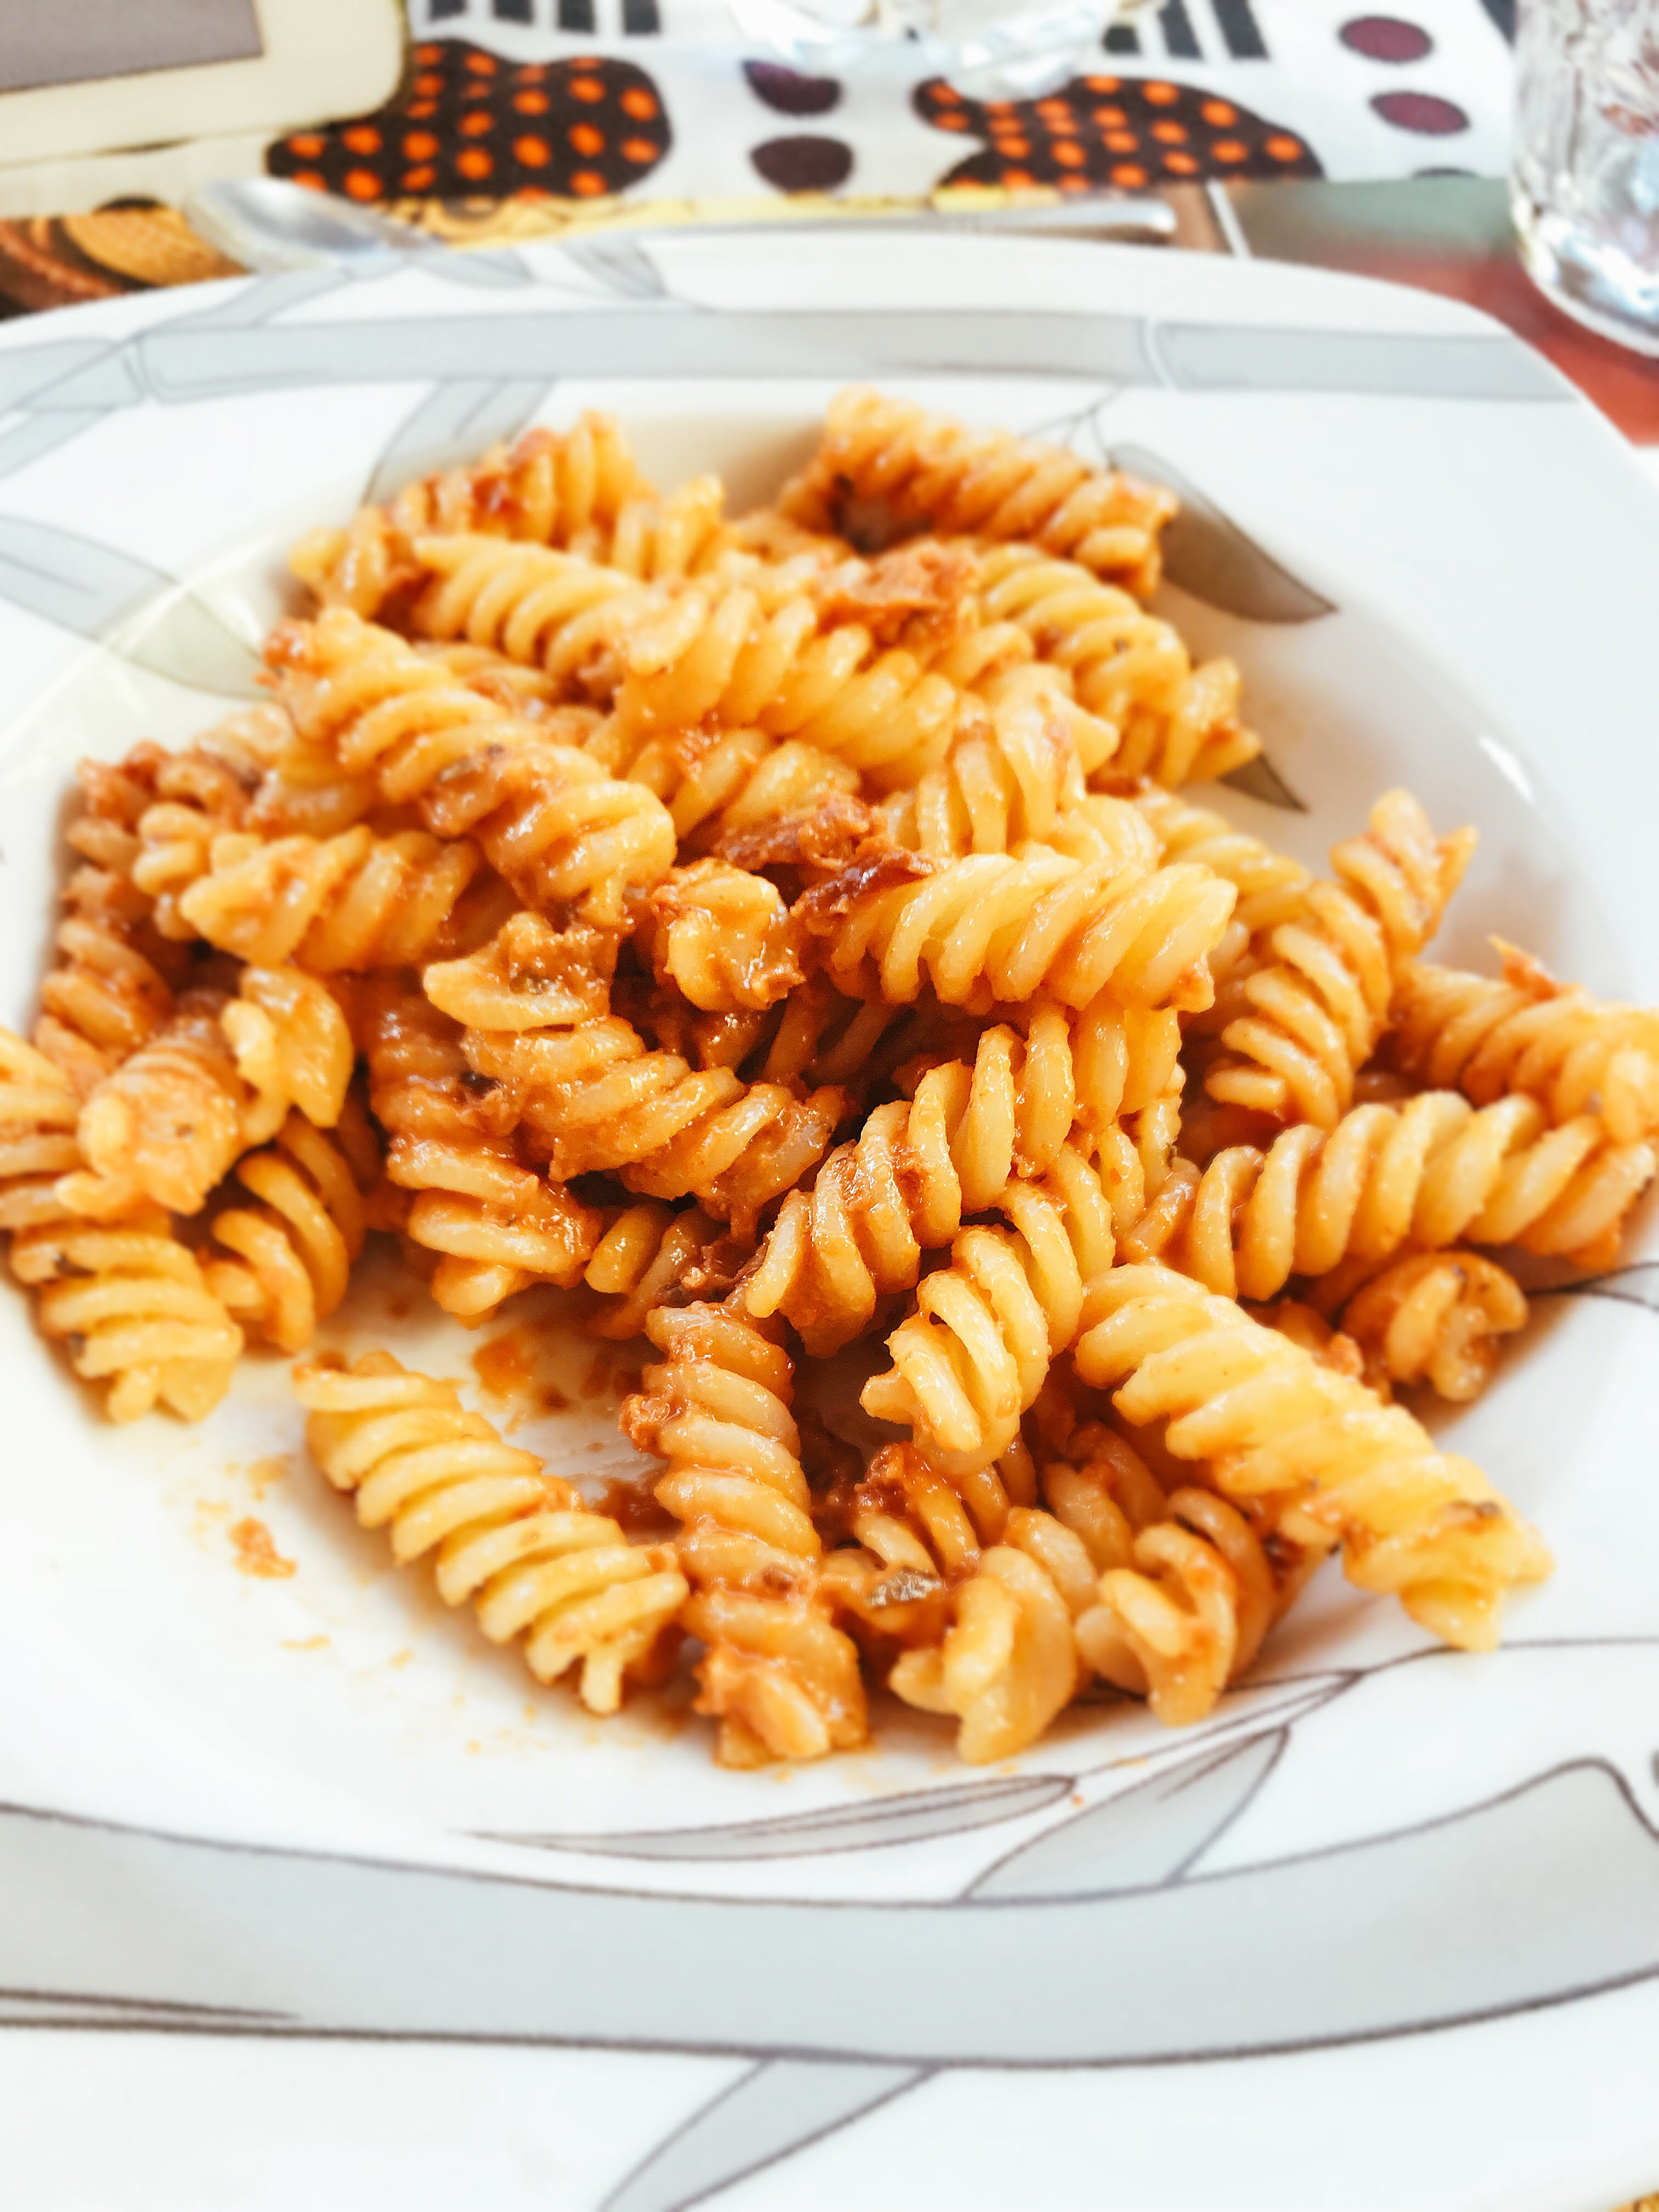 Pasta On Plate